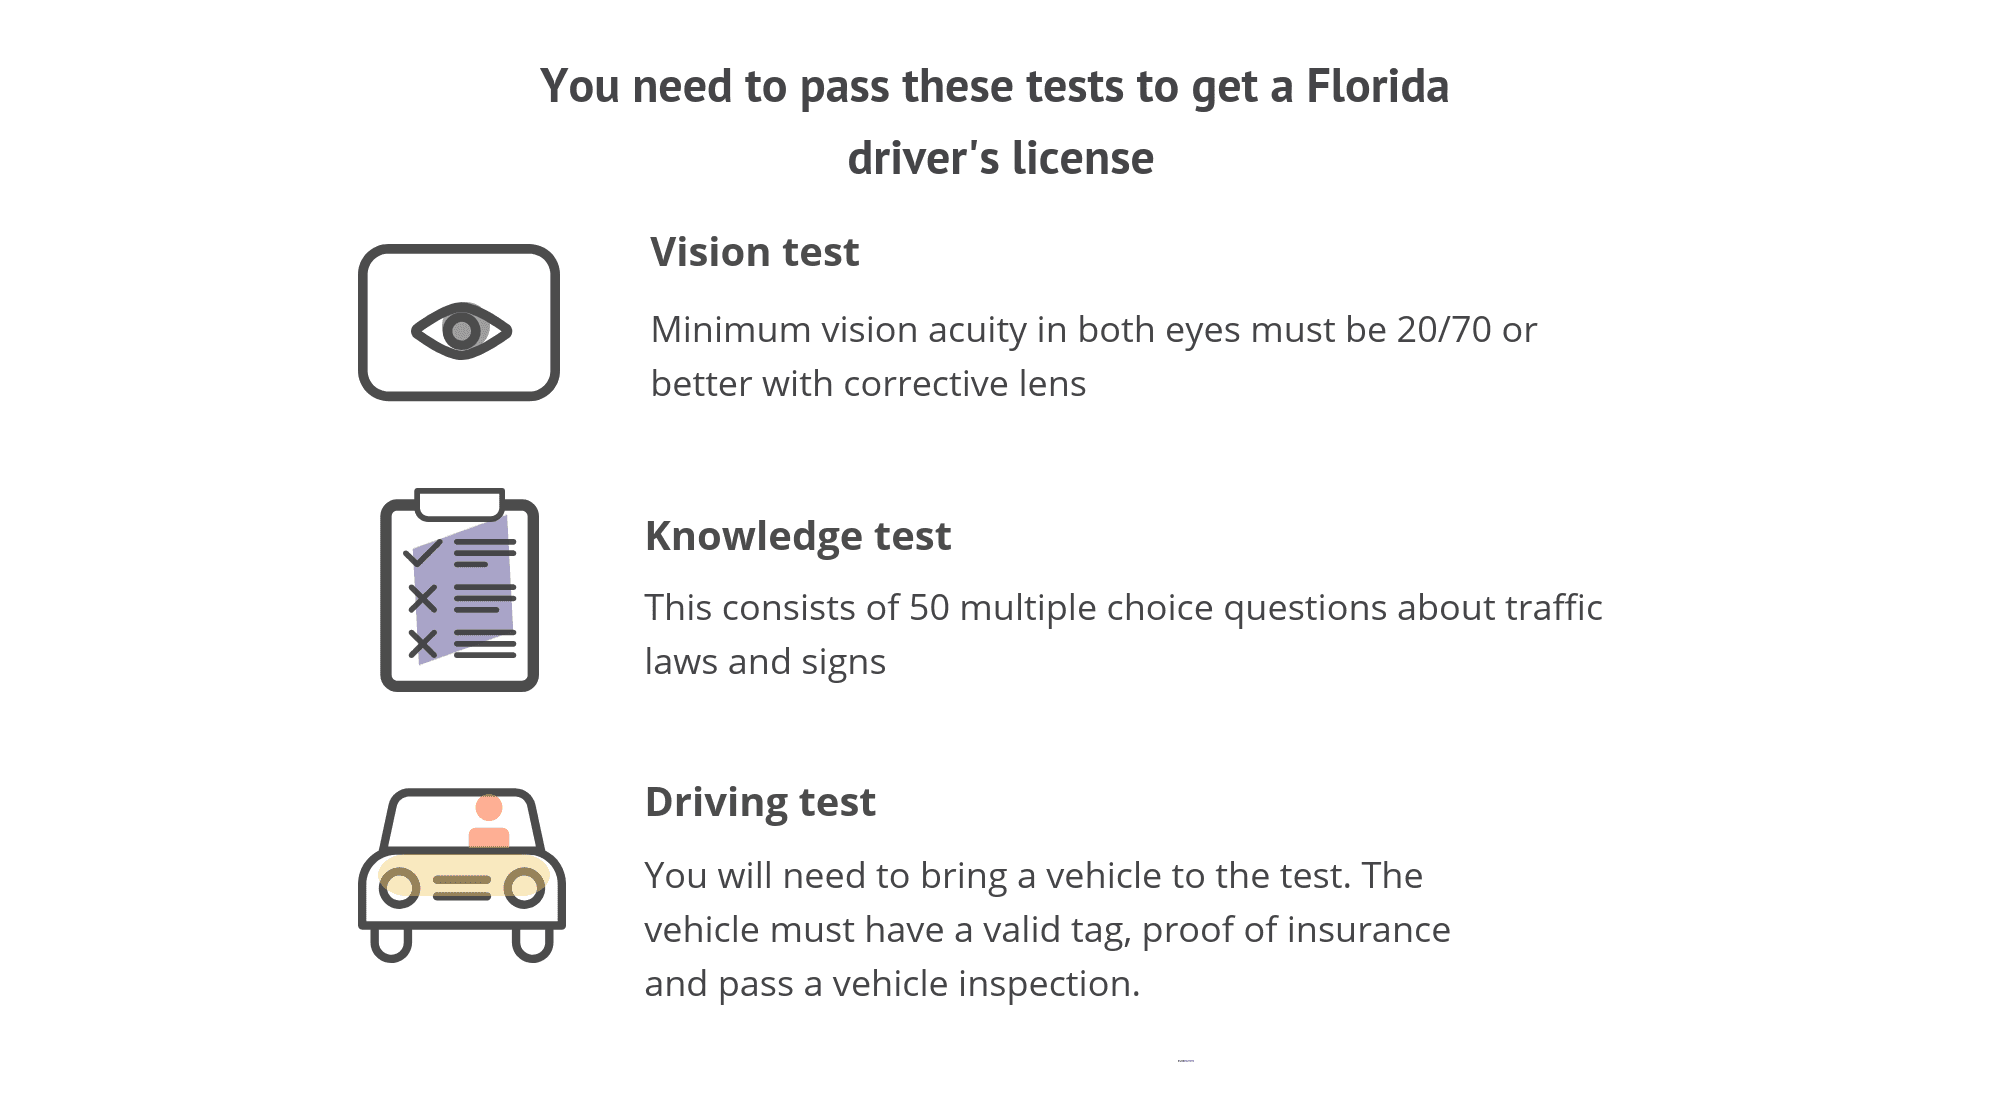 Tests needed to get a Florida driver's license